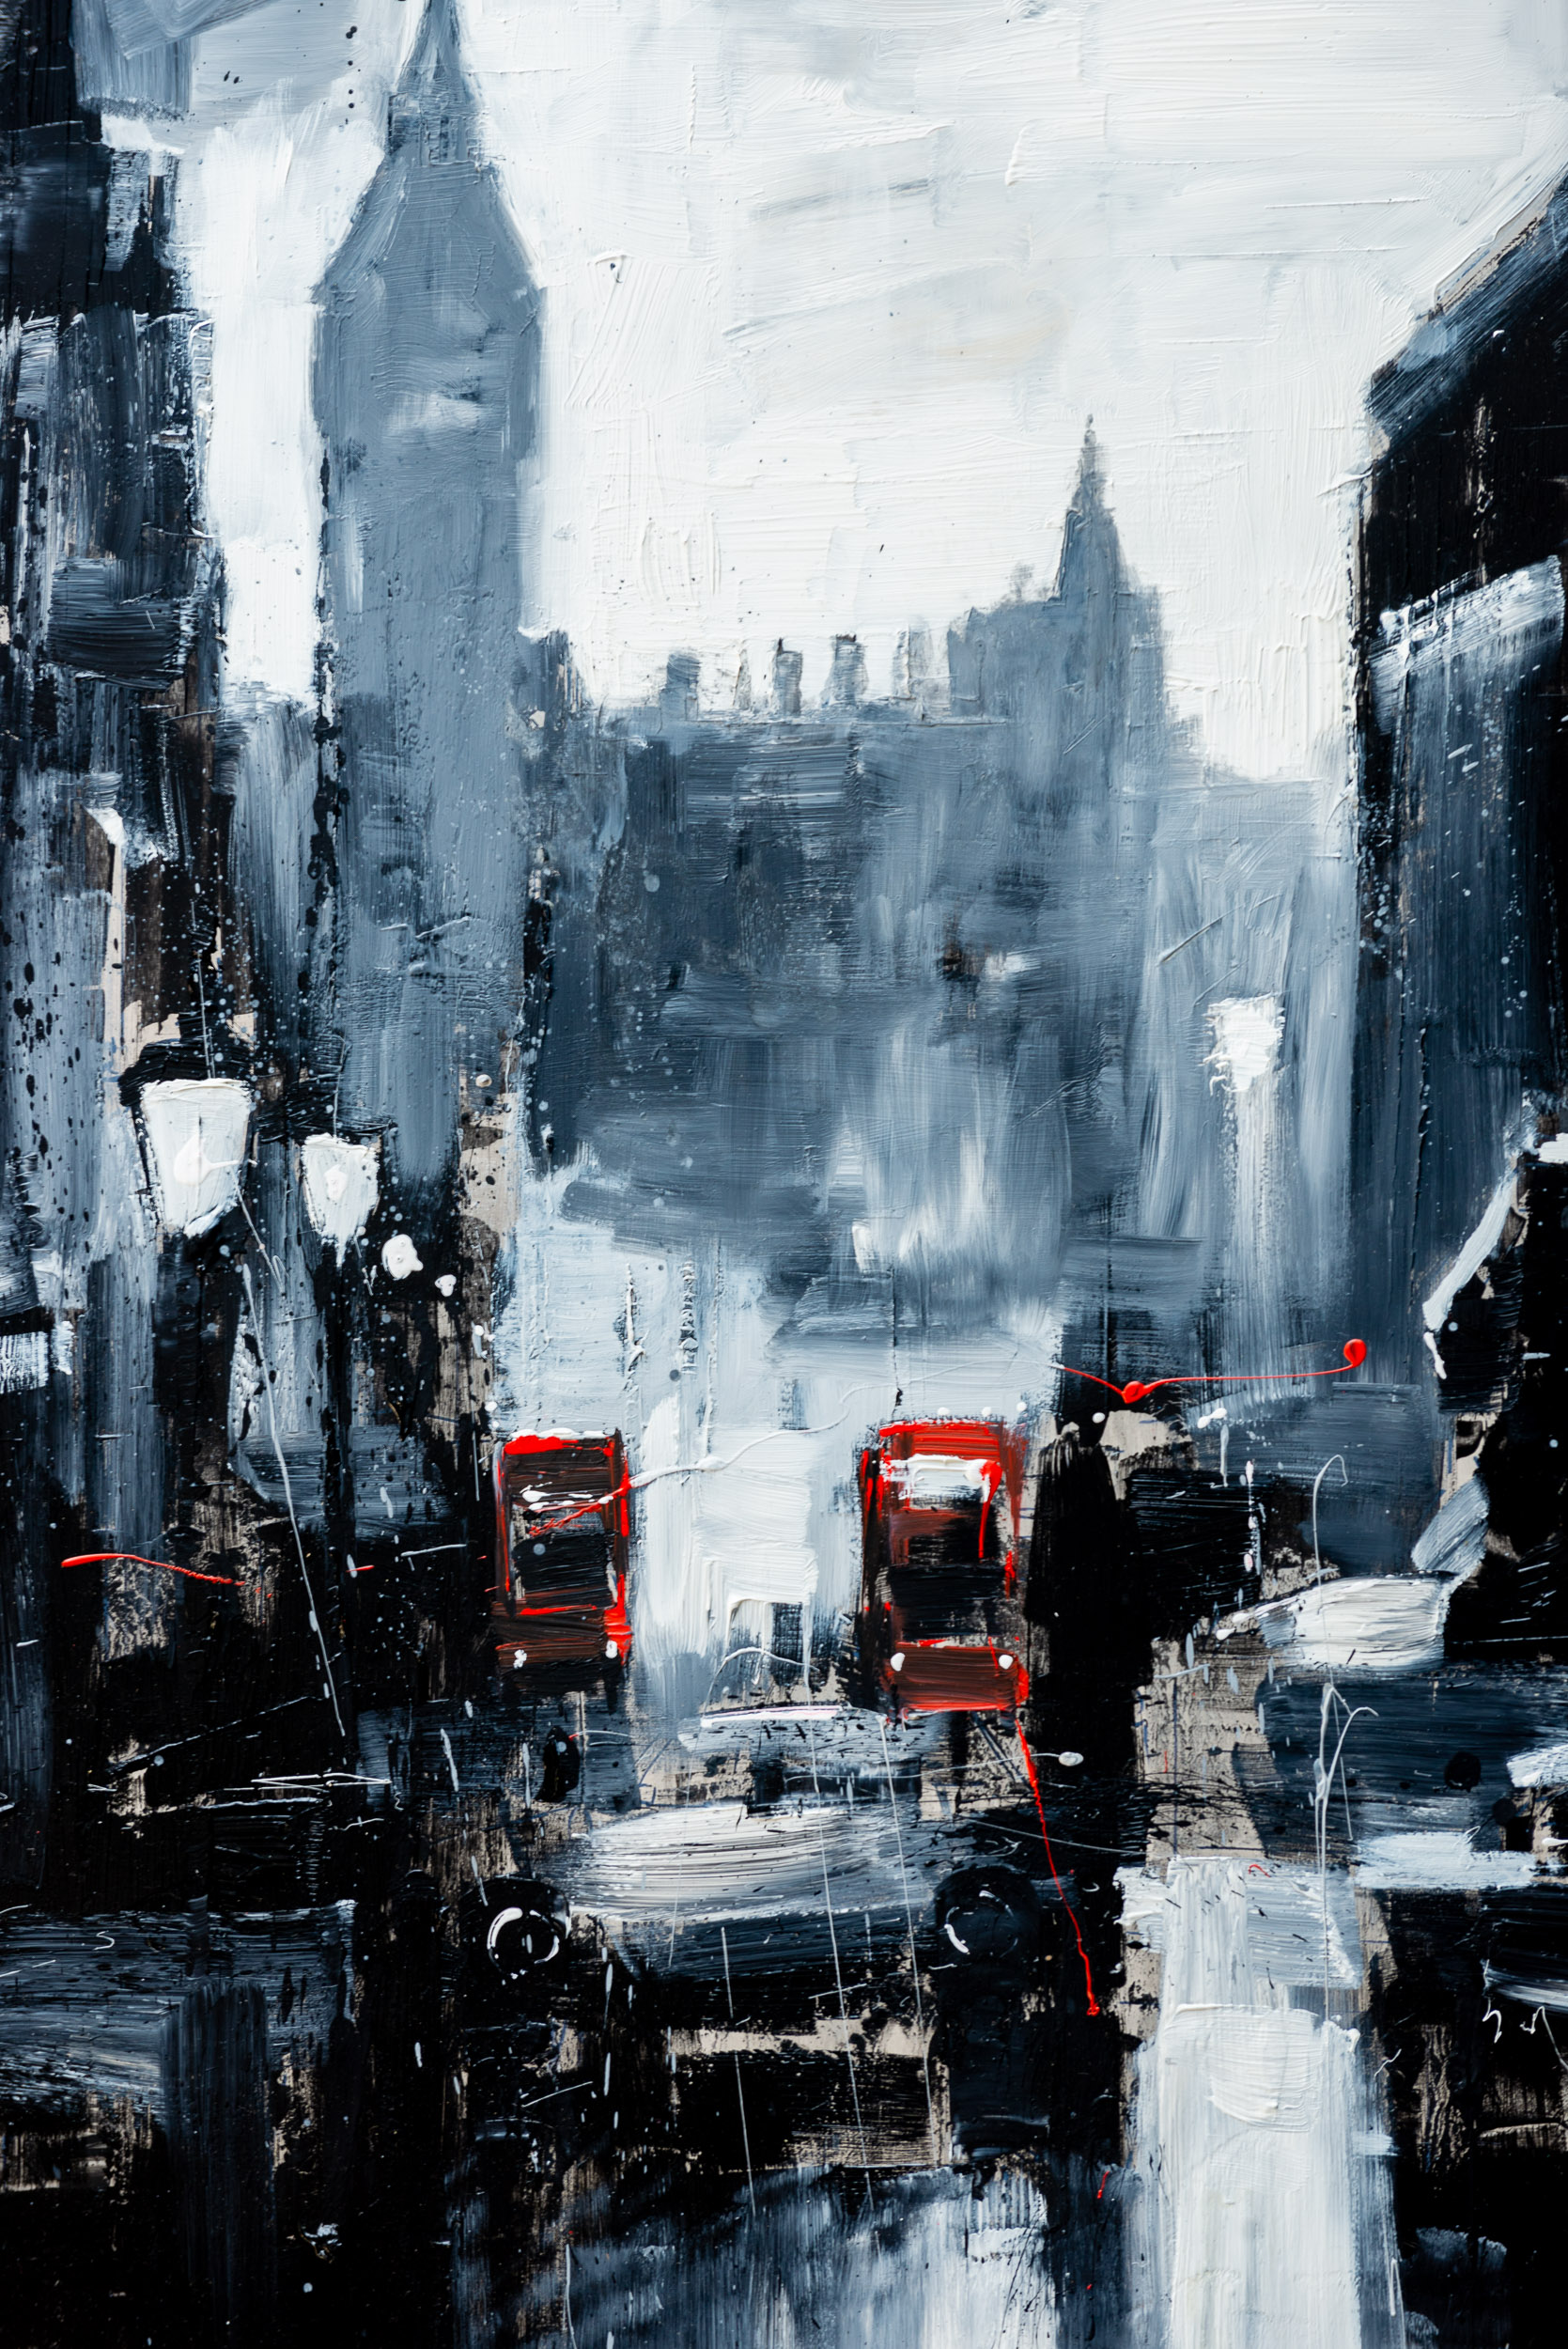 Immerse Into London - A London cityscape original painting by Paul Kenton